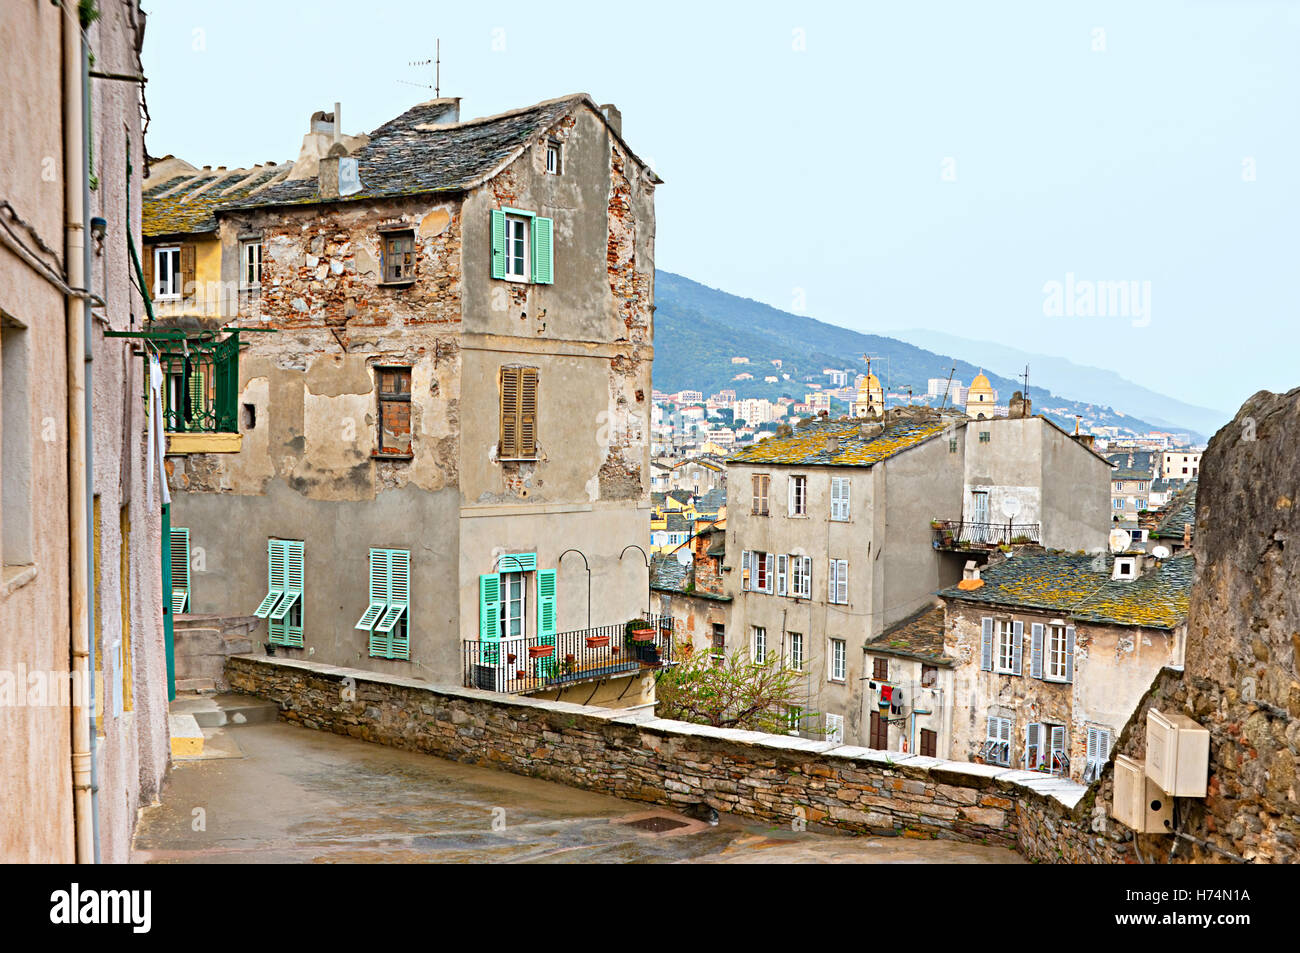 The bad preserved houses in the old neighborhood, Bastia, Corsica, France. - Stock Image